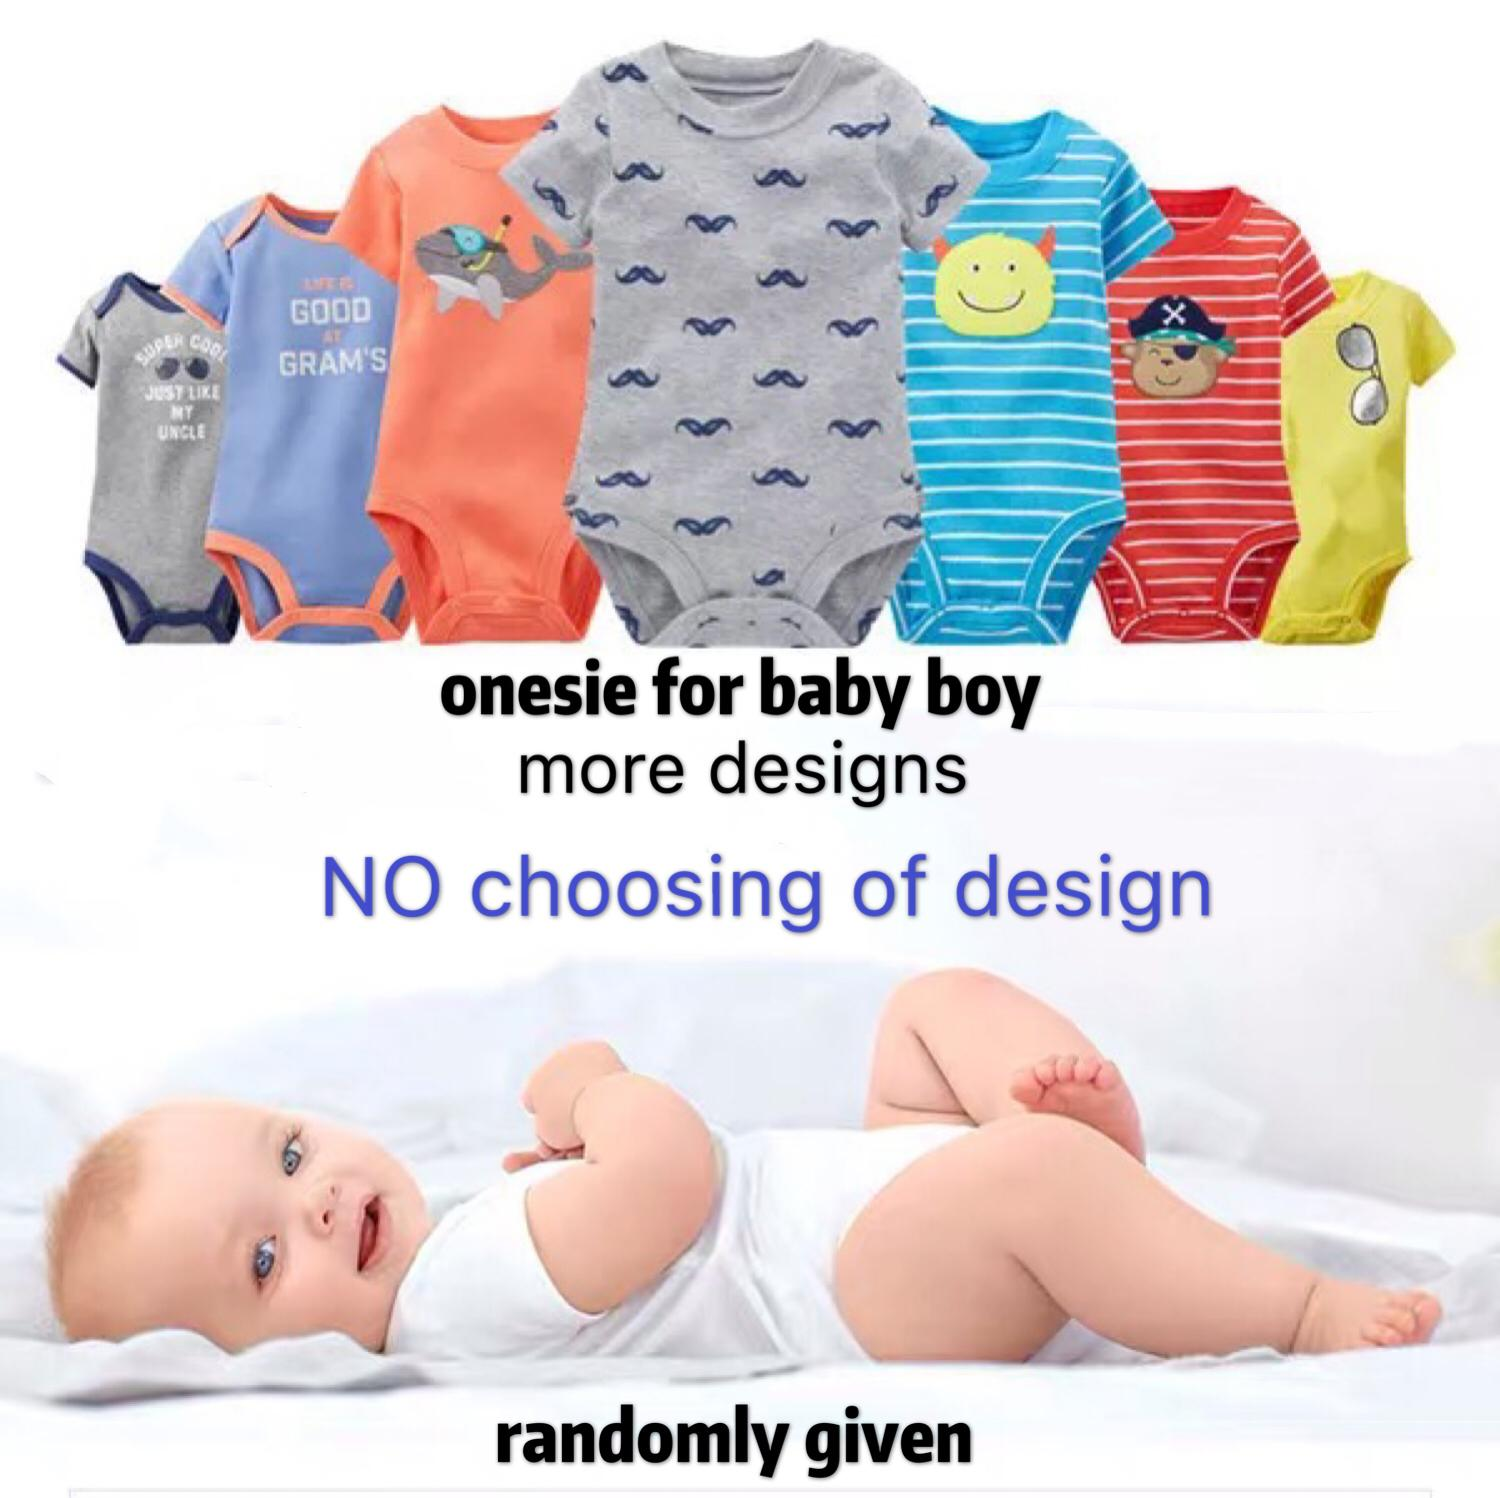 2c44a79da Onesie for sale - Baby Onesies Online Deals & Prices in Philippines ...